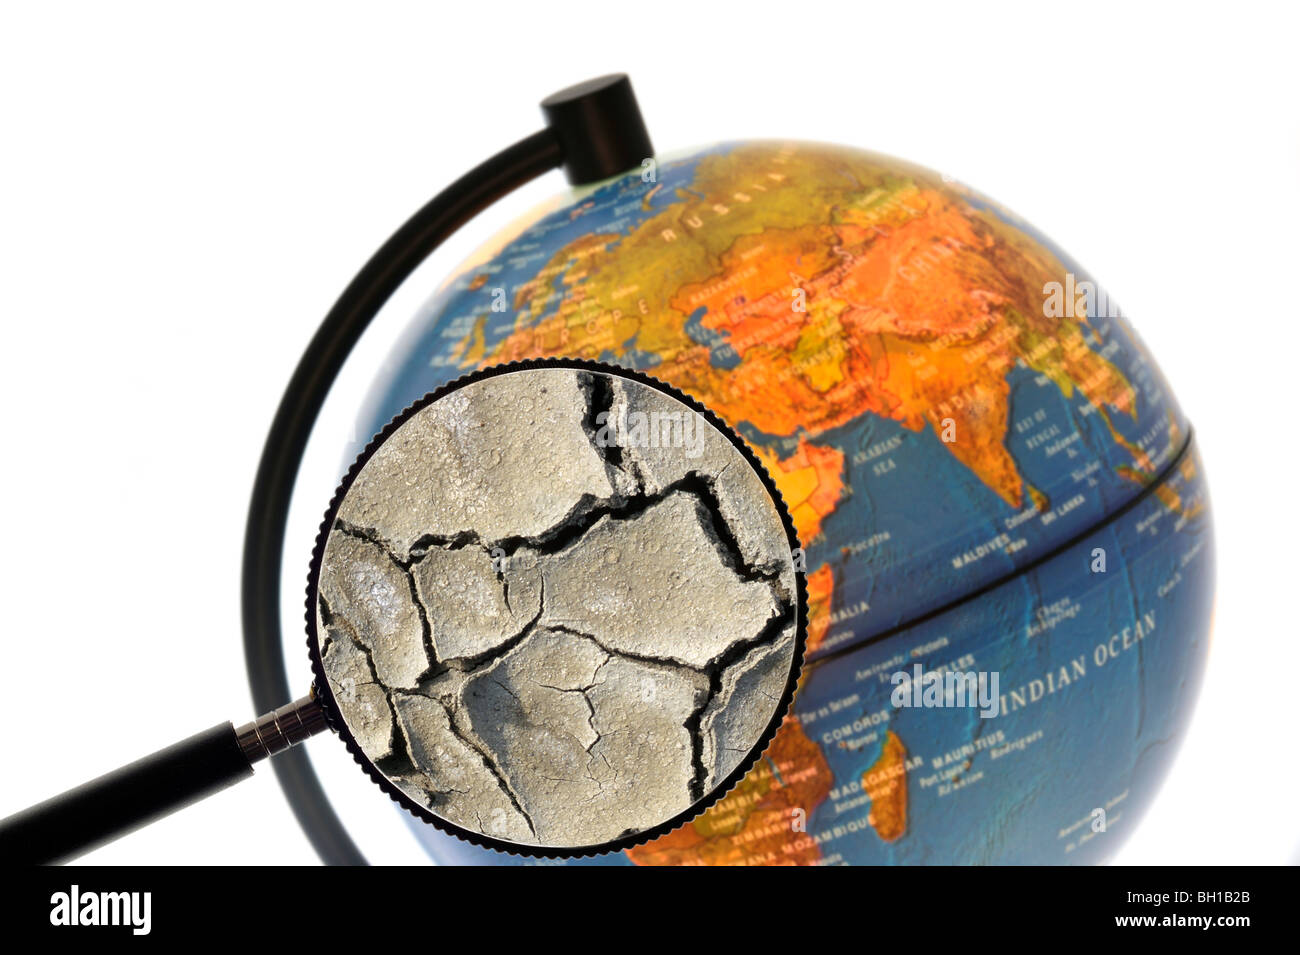 Cracked earth by drought seen through magnifying glass held against illuminated terrestrial globe - Stock Image